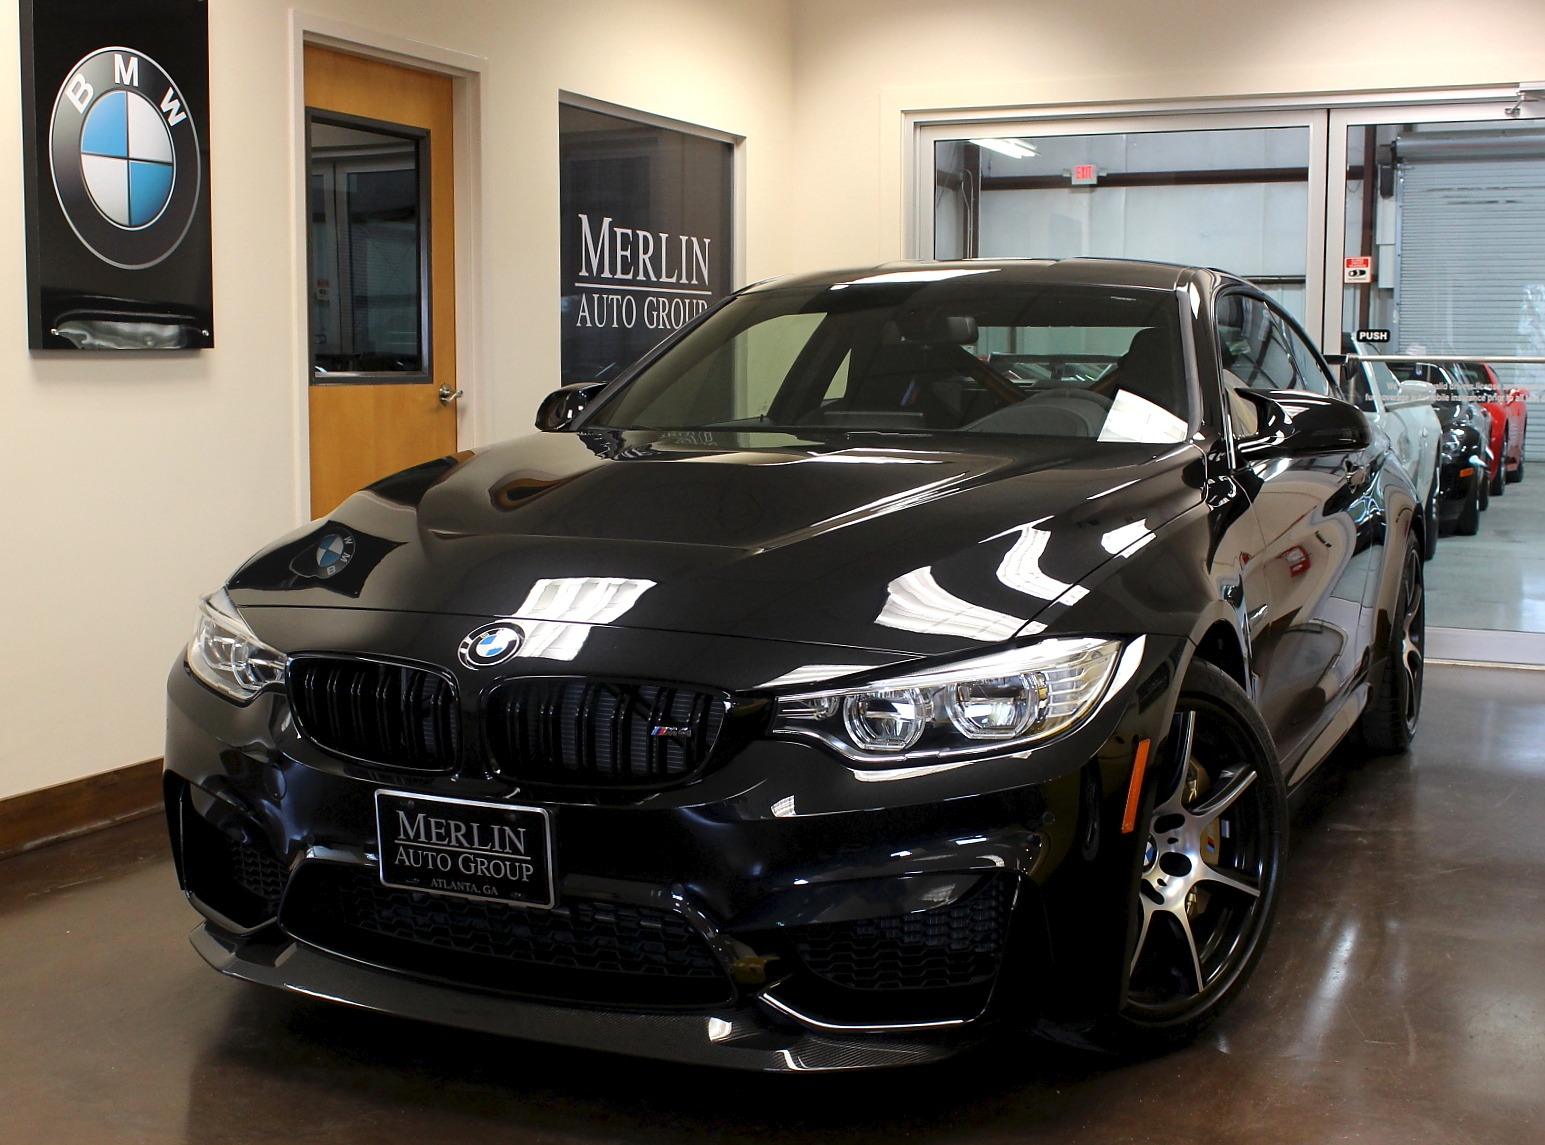 used 2016 bmw m4 stock p3513 ultra luxury car from merlin auto group. Black Bedroom Furniture Sets. Home Design Ideas